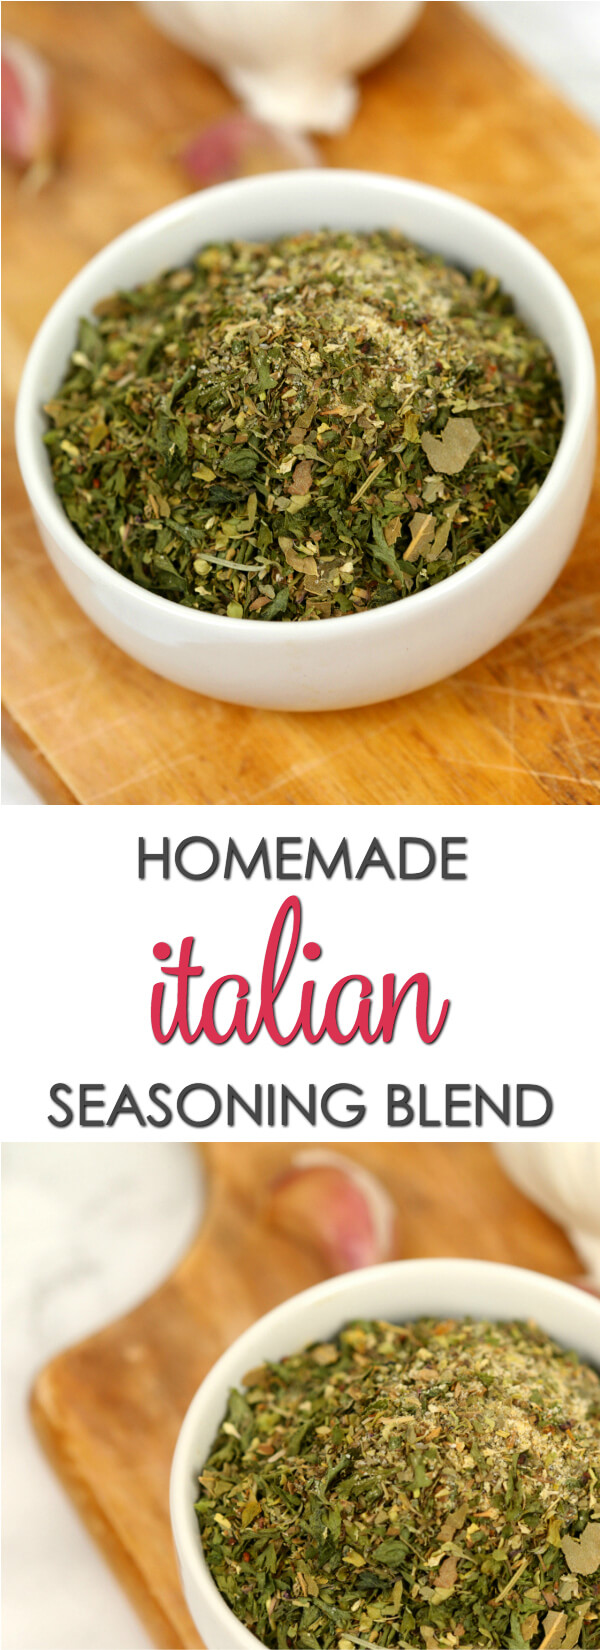 This ITALIAN SEASONING MIX RECIPE is easy to make at home. The ingredients are easy to come by and the combination is a great go to for homemade Italian dishes like lasagna, spaghetti sauce, and pizza. Just store it in a spice jar for those in a pinch recipes!  #itisakeeper #recipe #recipes #spiceblend #spice #italian #homemade #easyrecipe #quickrecipe #bestrecipe #pasta #meatballs